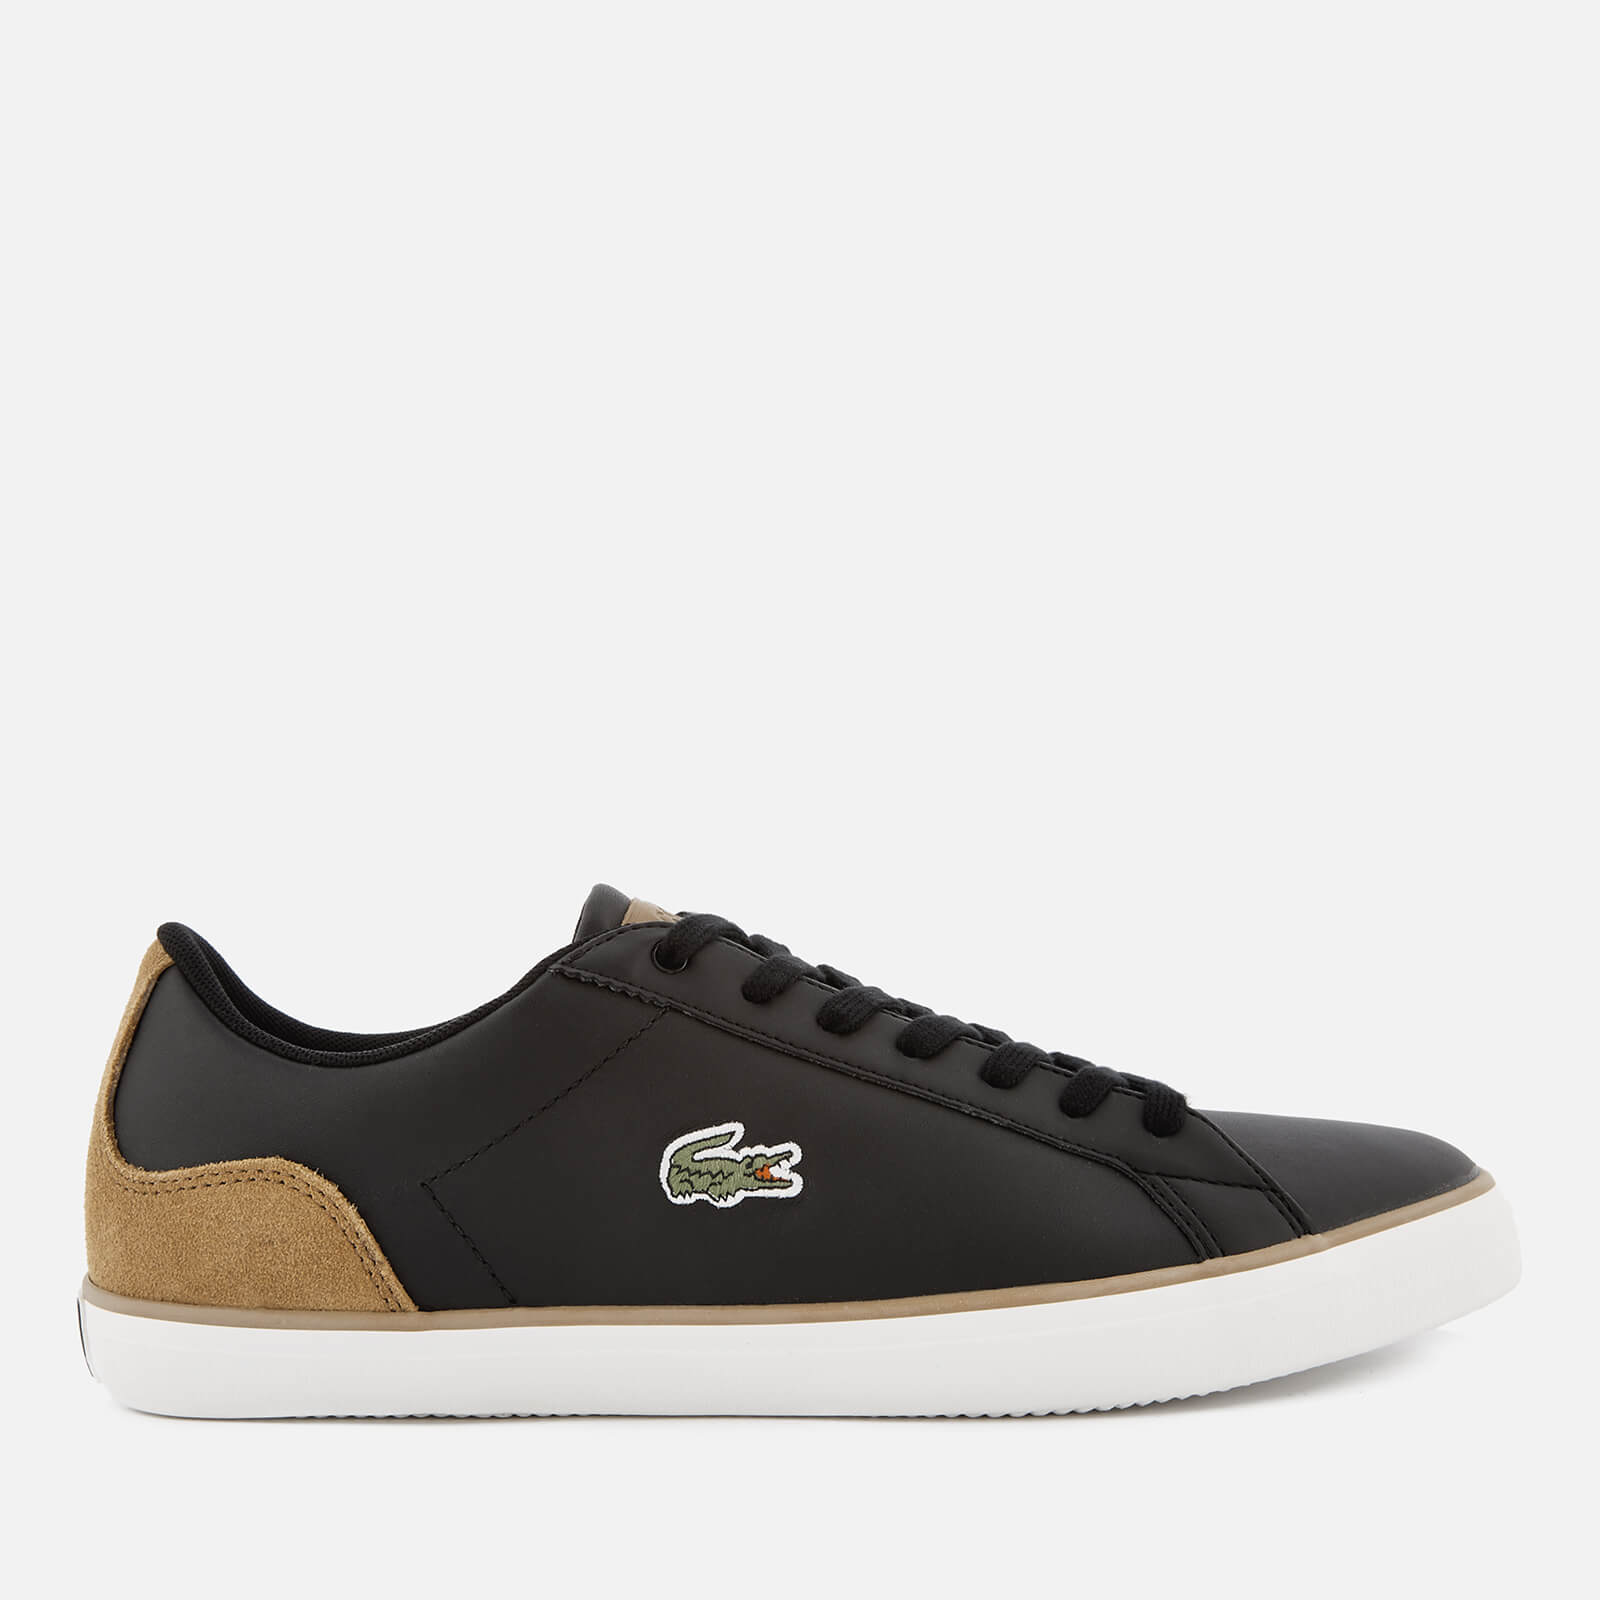 a74002aff Lacoste Men s Lerond 118 1 Leather Trainers - Black Light Brown - Free UK  Delivery over £50